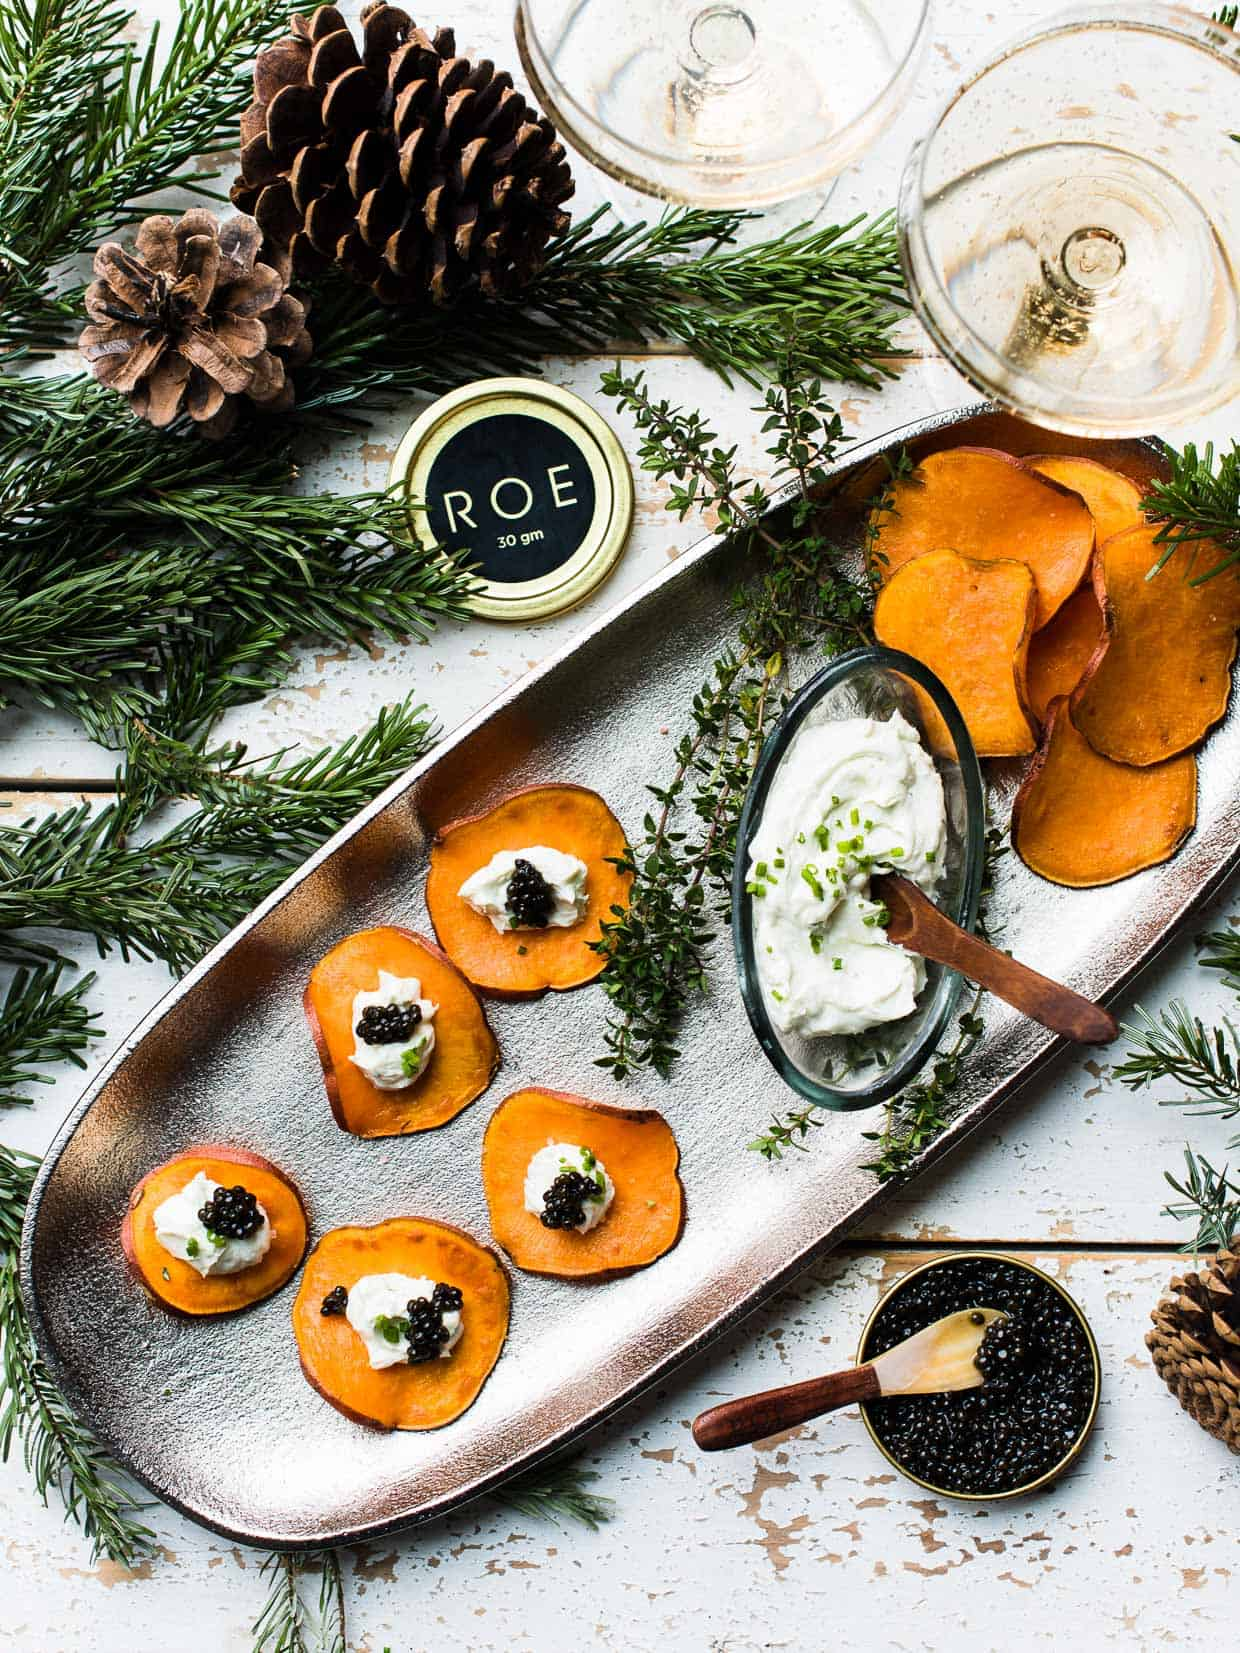 Sweet Potato Chips with Whipped Goat Cheese and Caviar - simple, elegant and celebration-worthy, these are the perfect appetizer for your next festive get together!